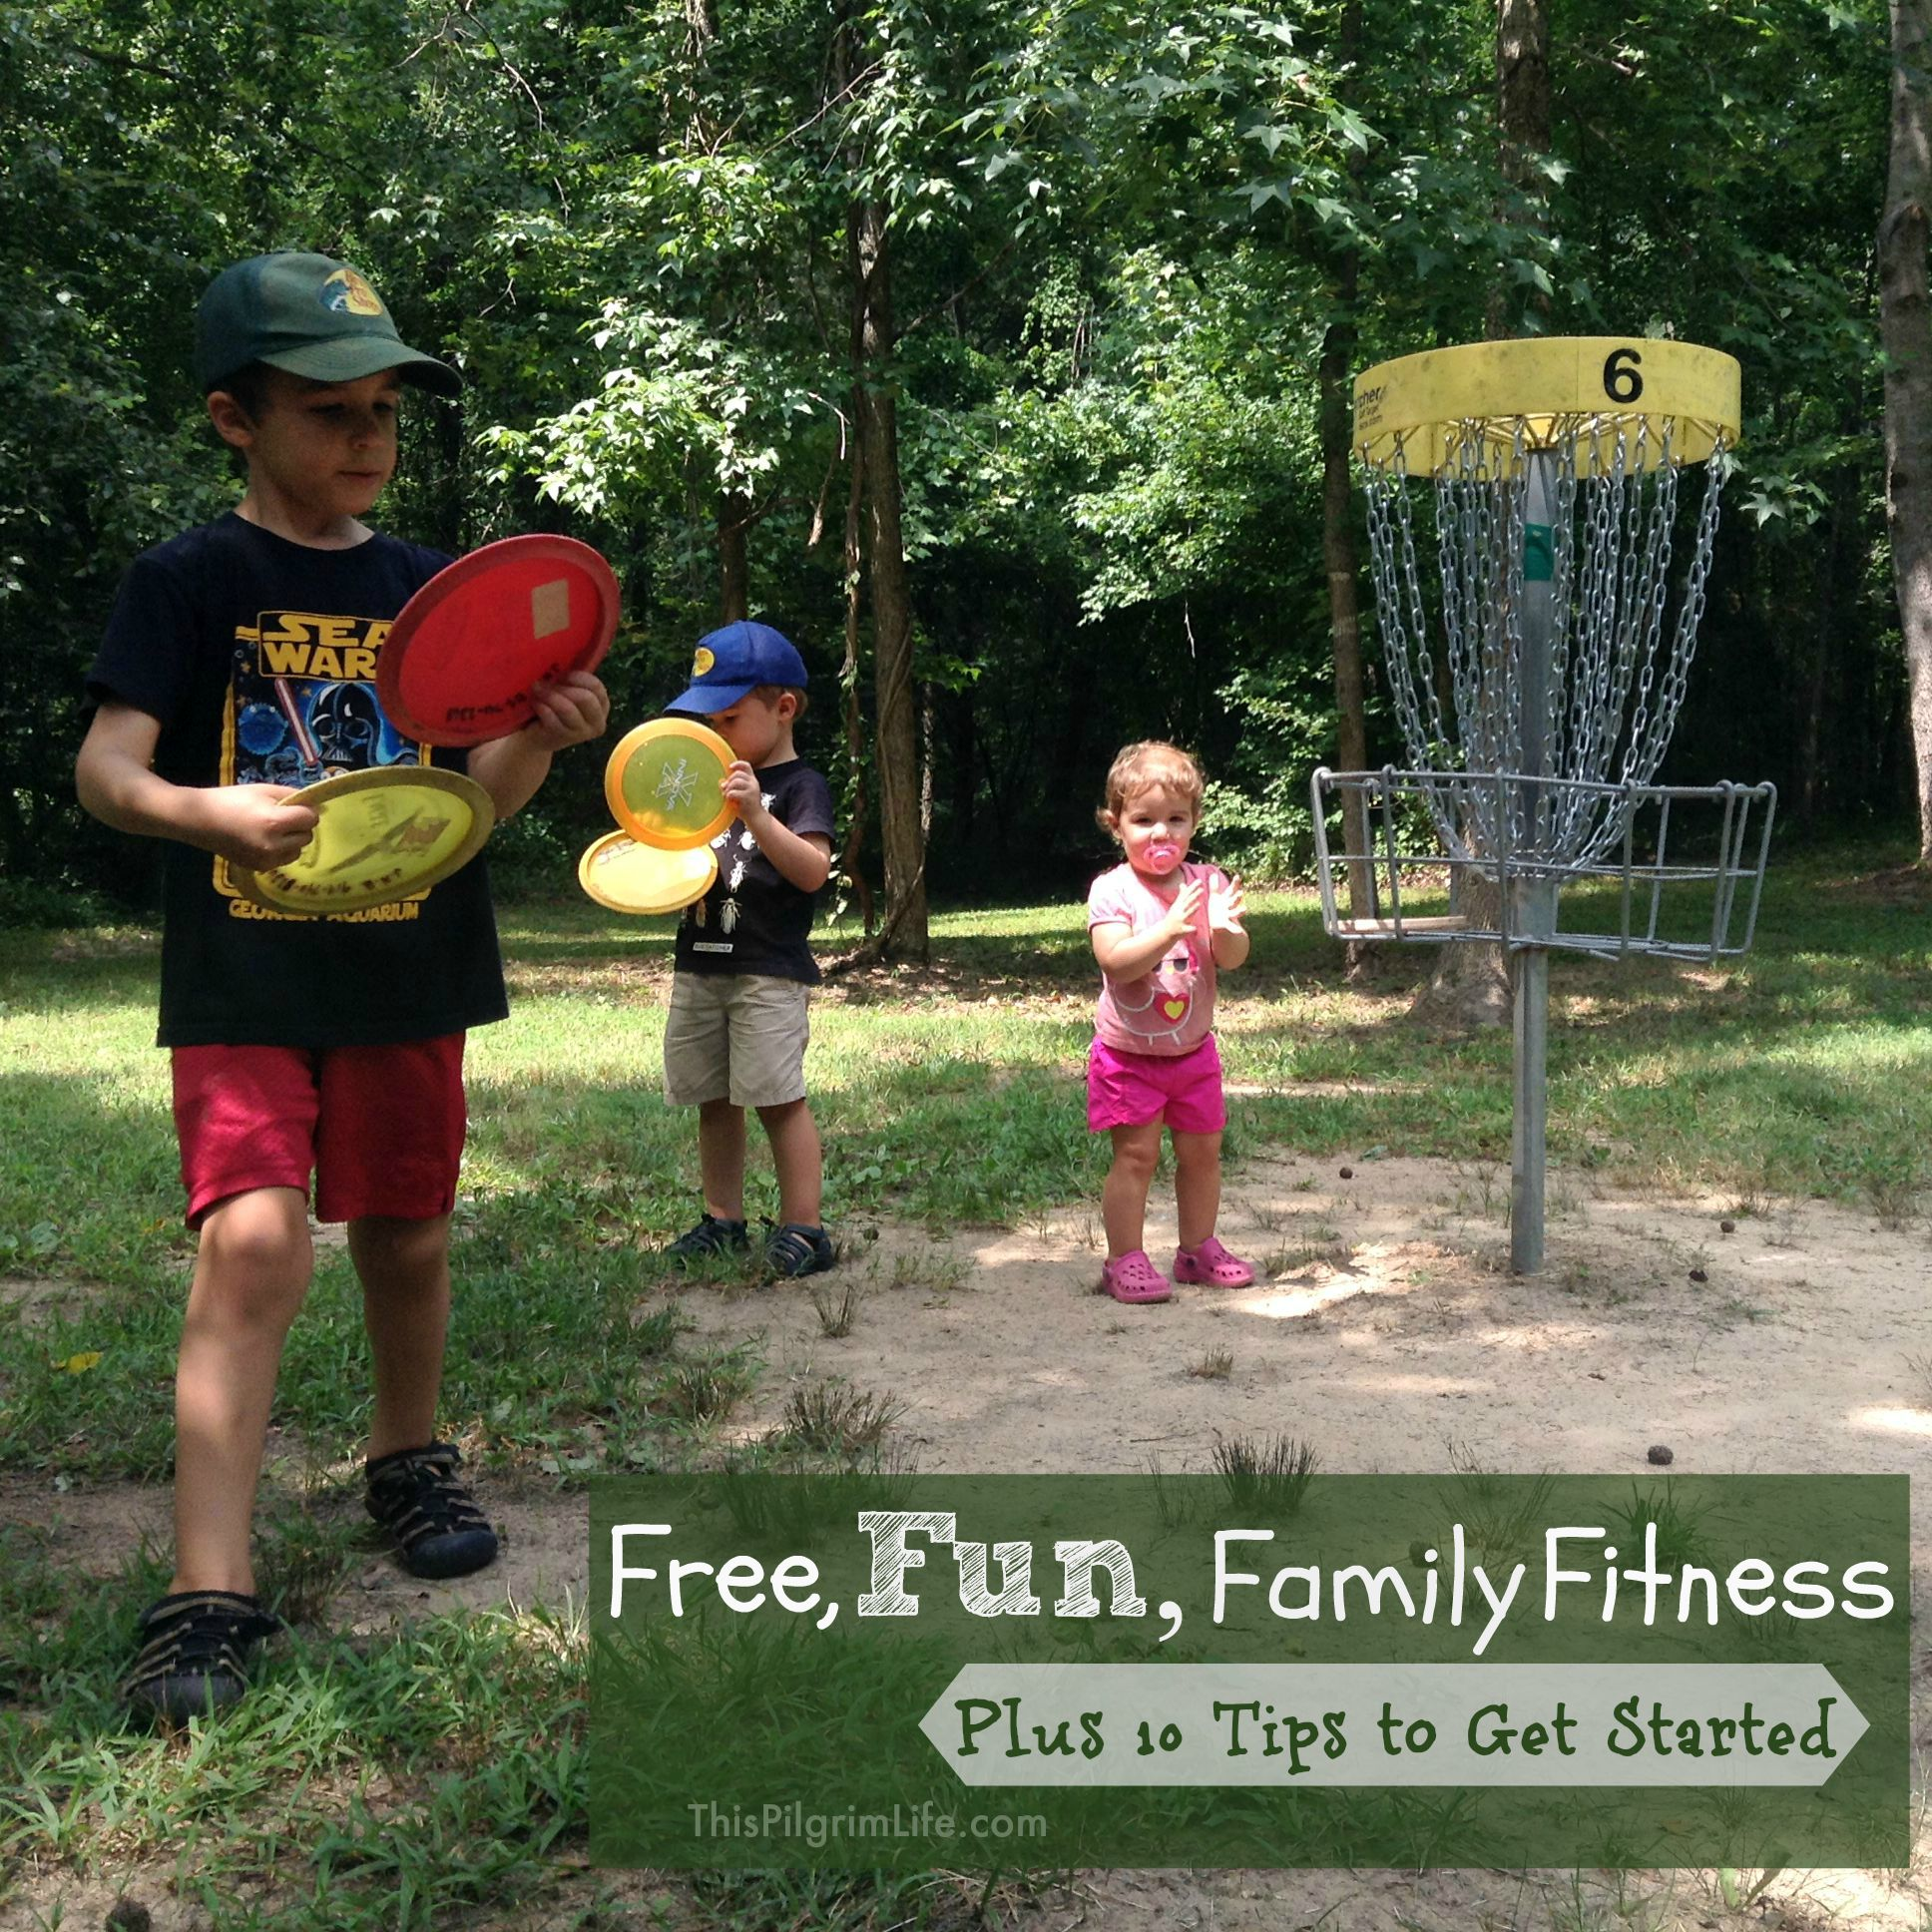 This is one our favorite games to play as a family-- it's free, outdoors, and something we can do all together (even the toddler!).